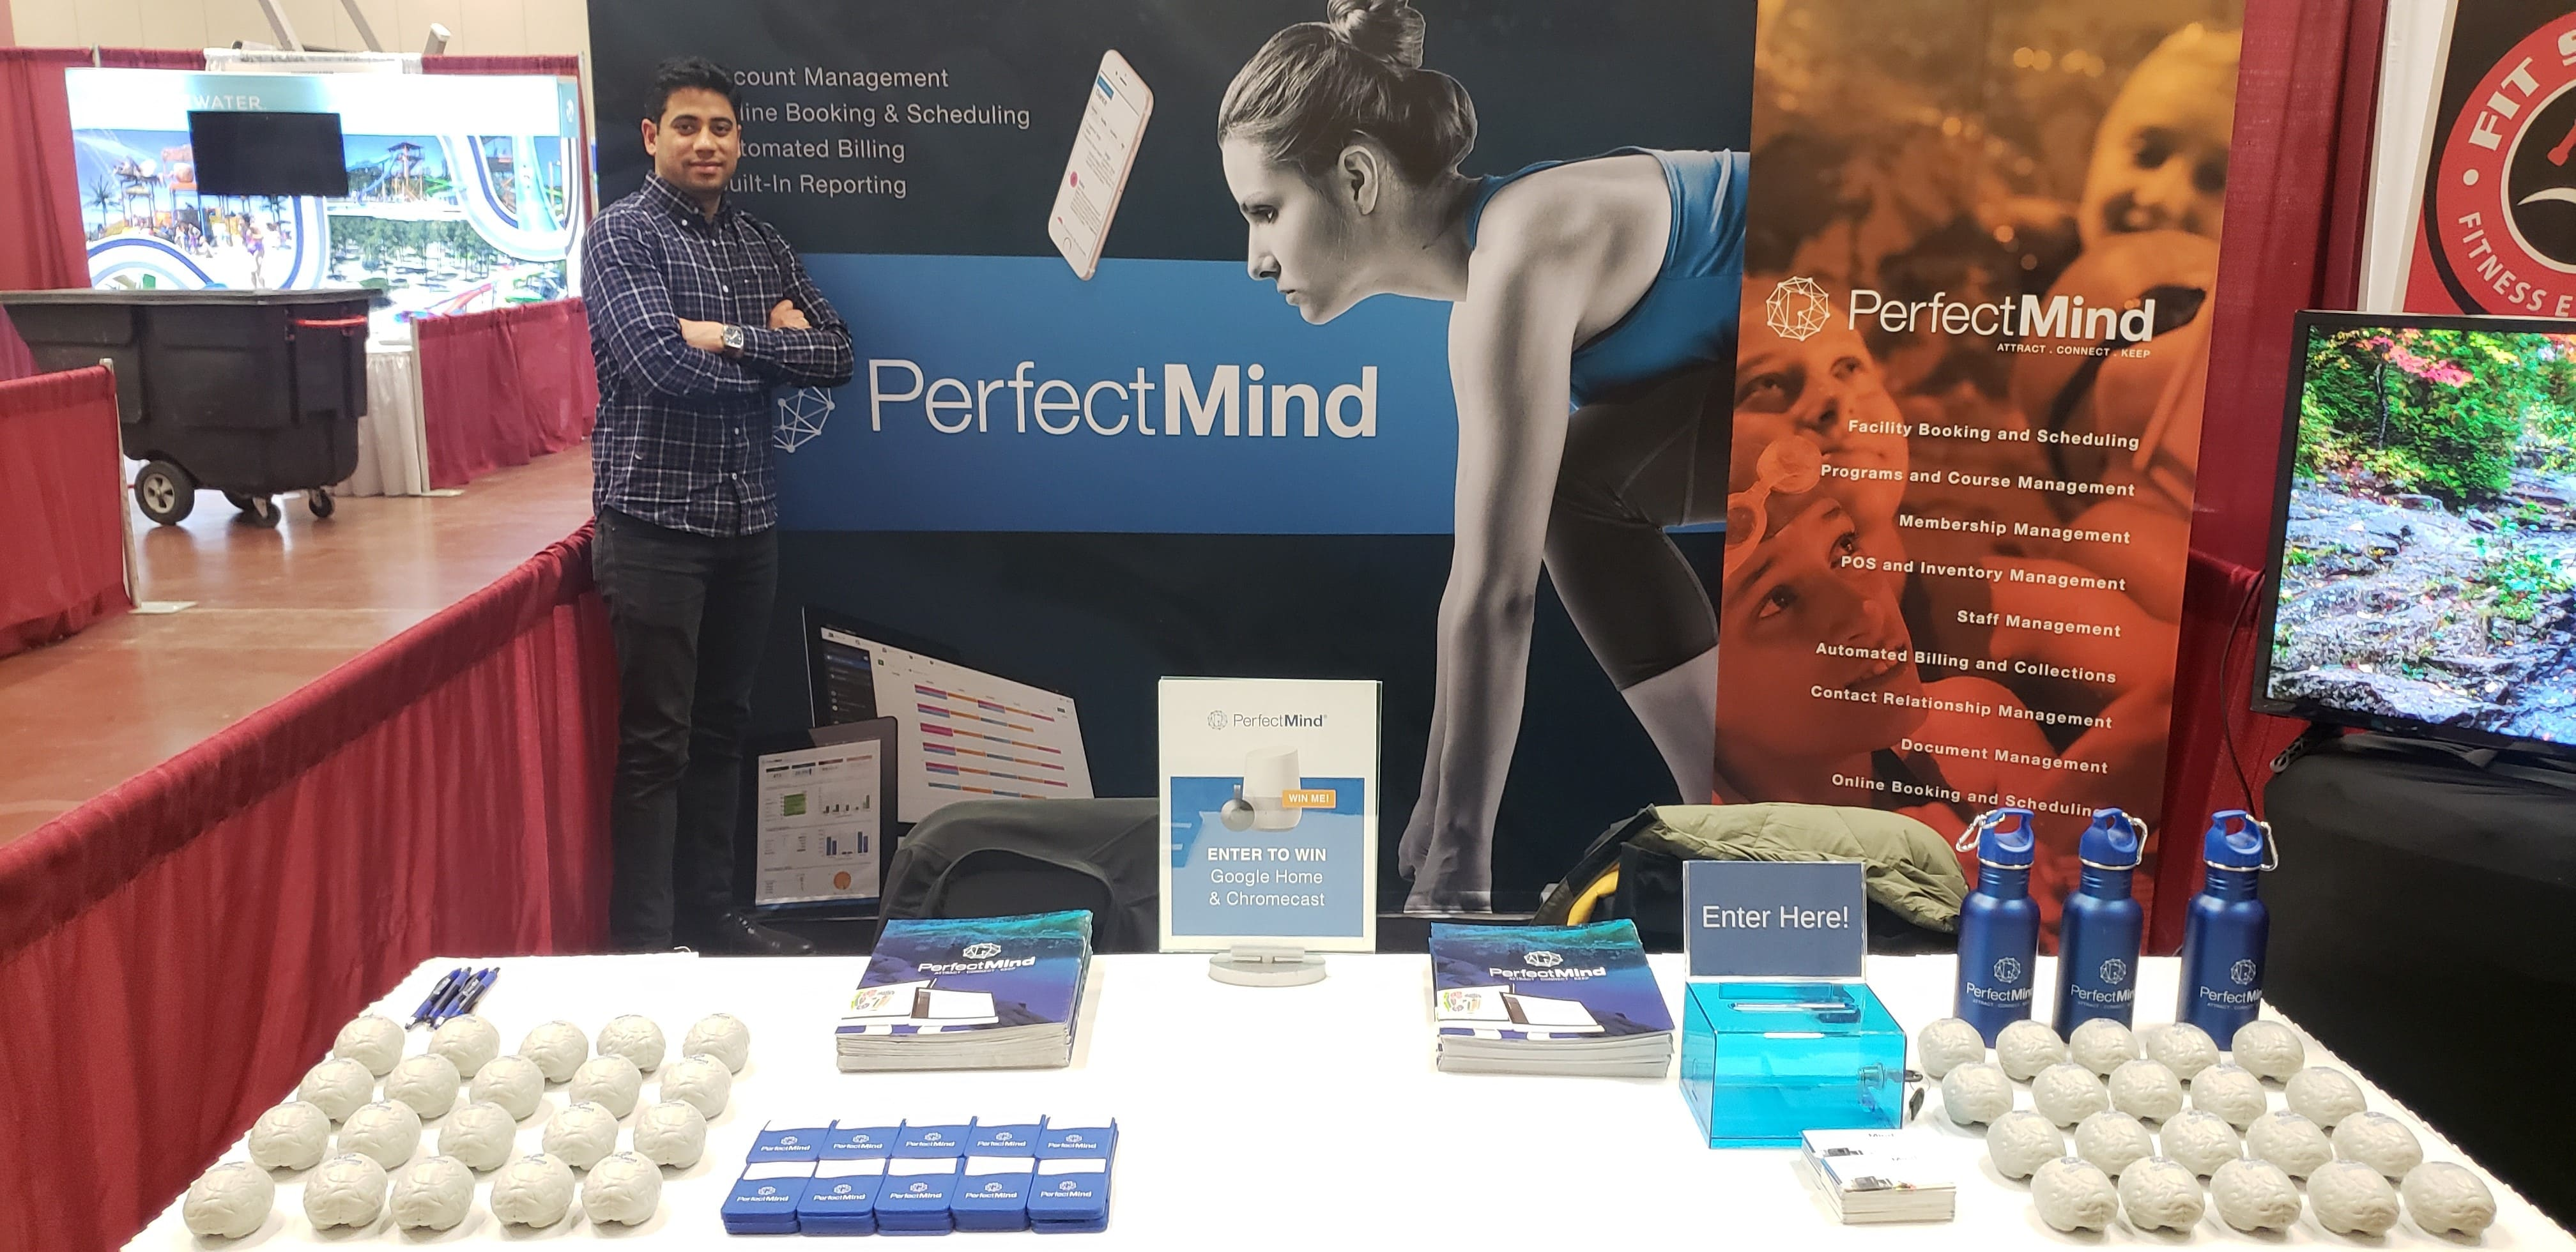 2019 TRAPS - Aman at PM booth-1